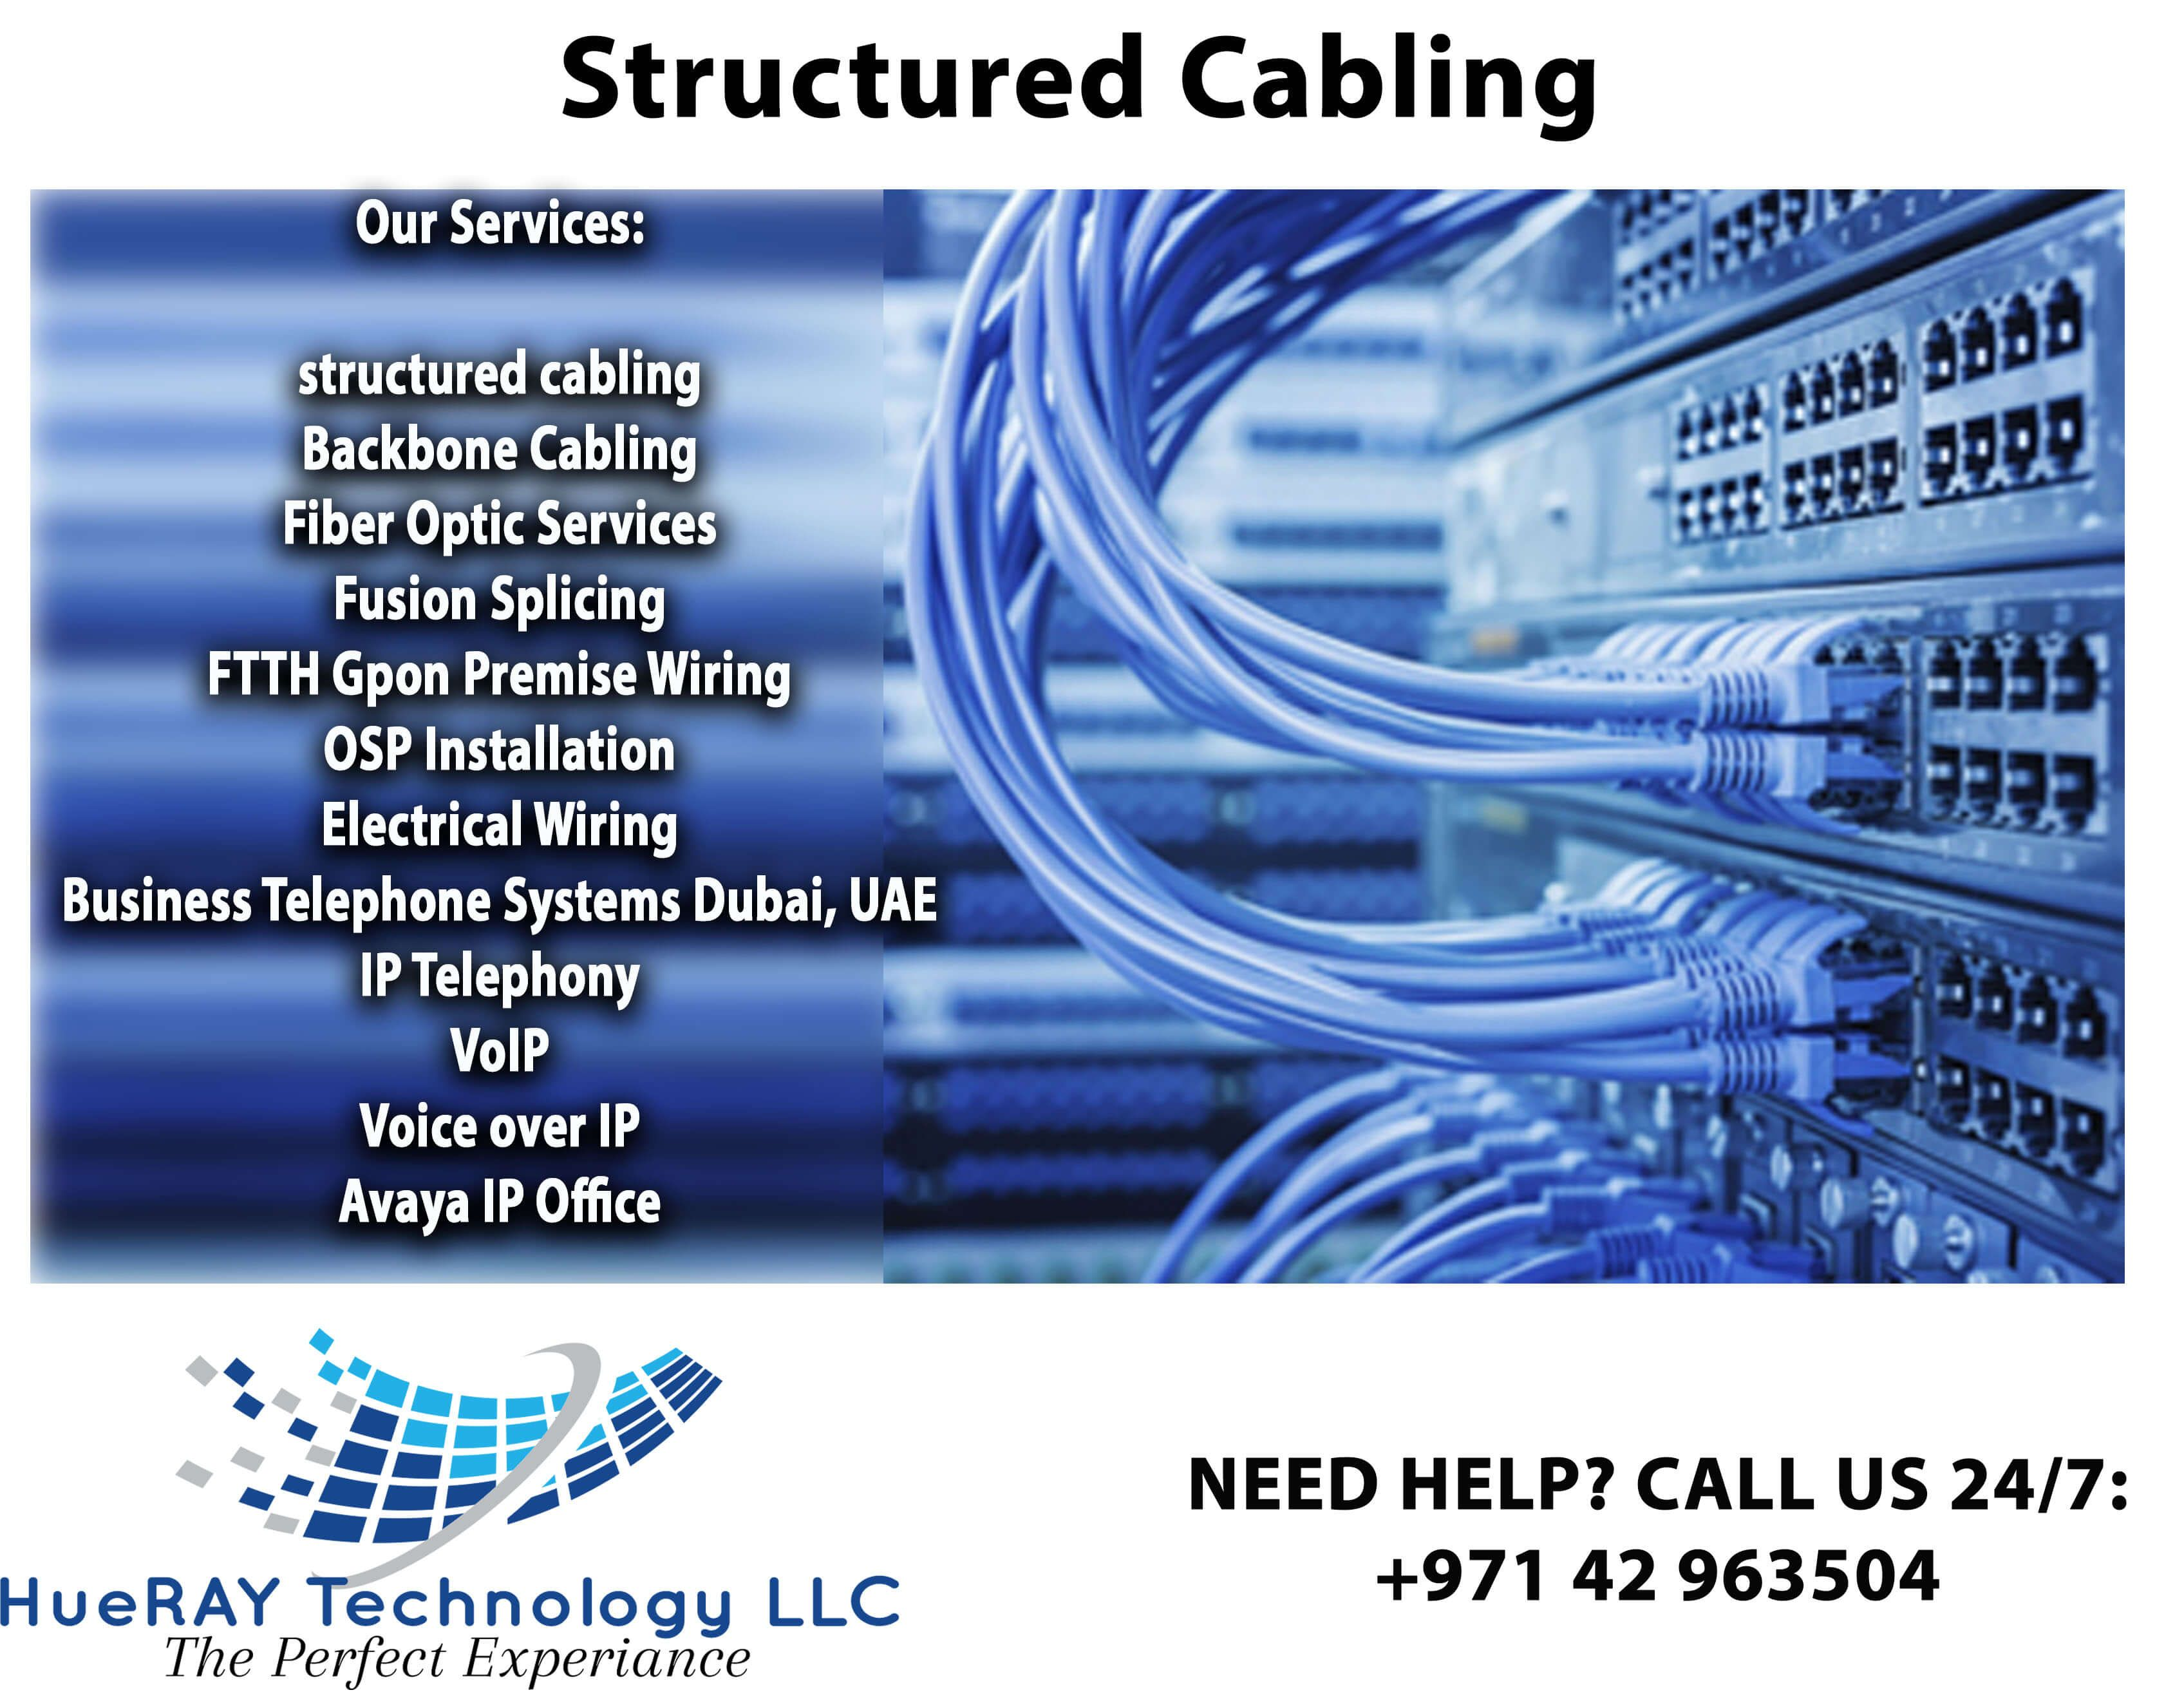 network cabling company dubaiHUERAY TECHNOLOGY LLC | Cable ... on